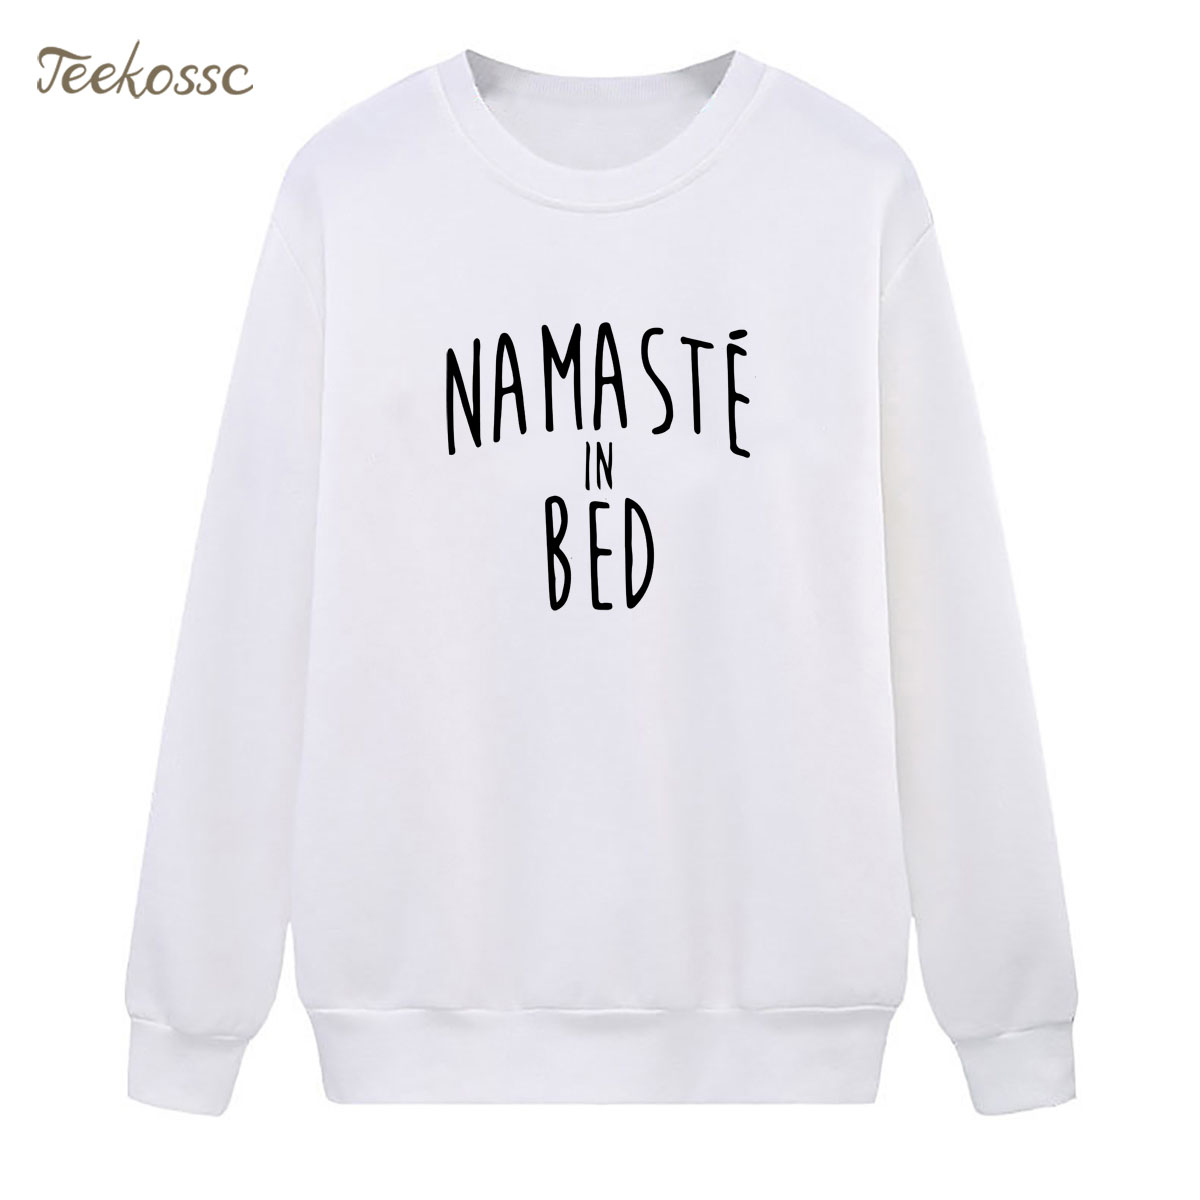 Namaste In Bed Sweatshirt Letter Print Hoodie 2018 New Fashion Winter Autumn Women Lasdies Pullover Loose Fleece Streetwear XXL